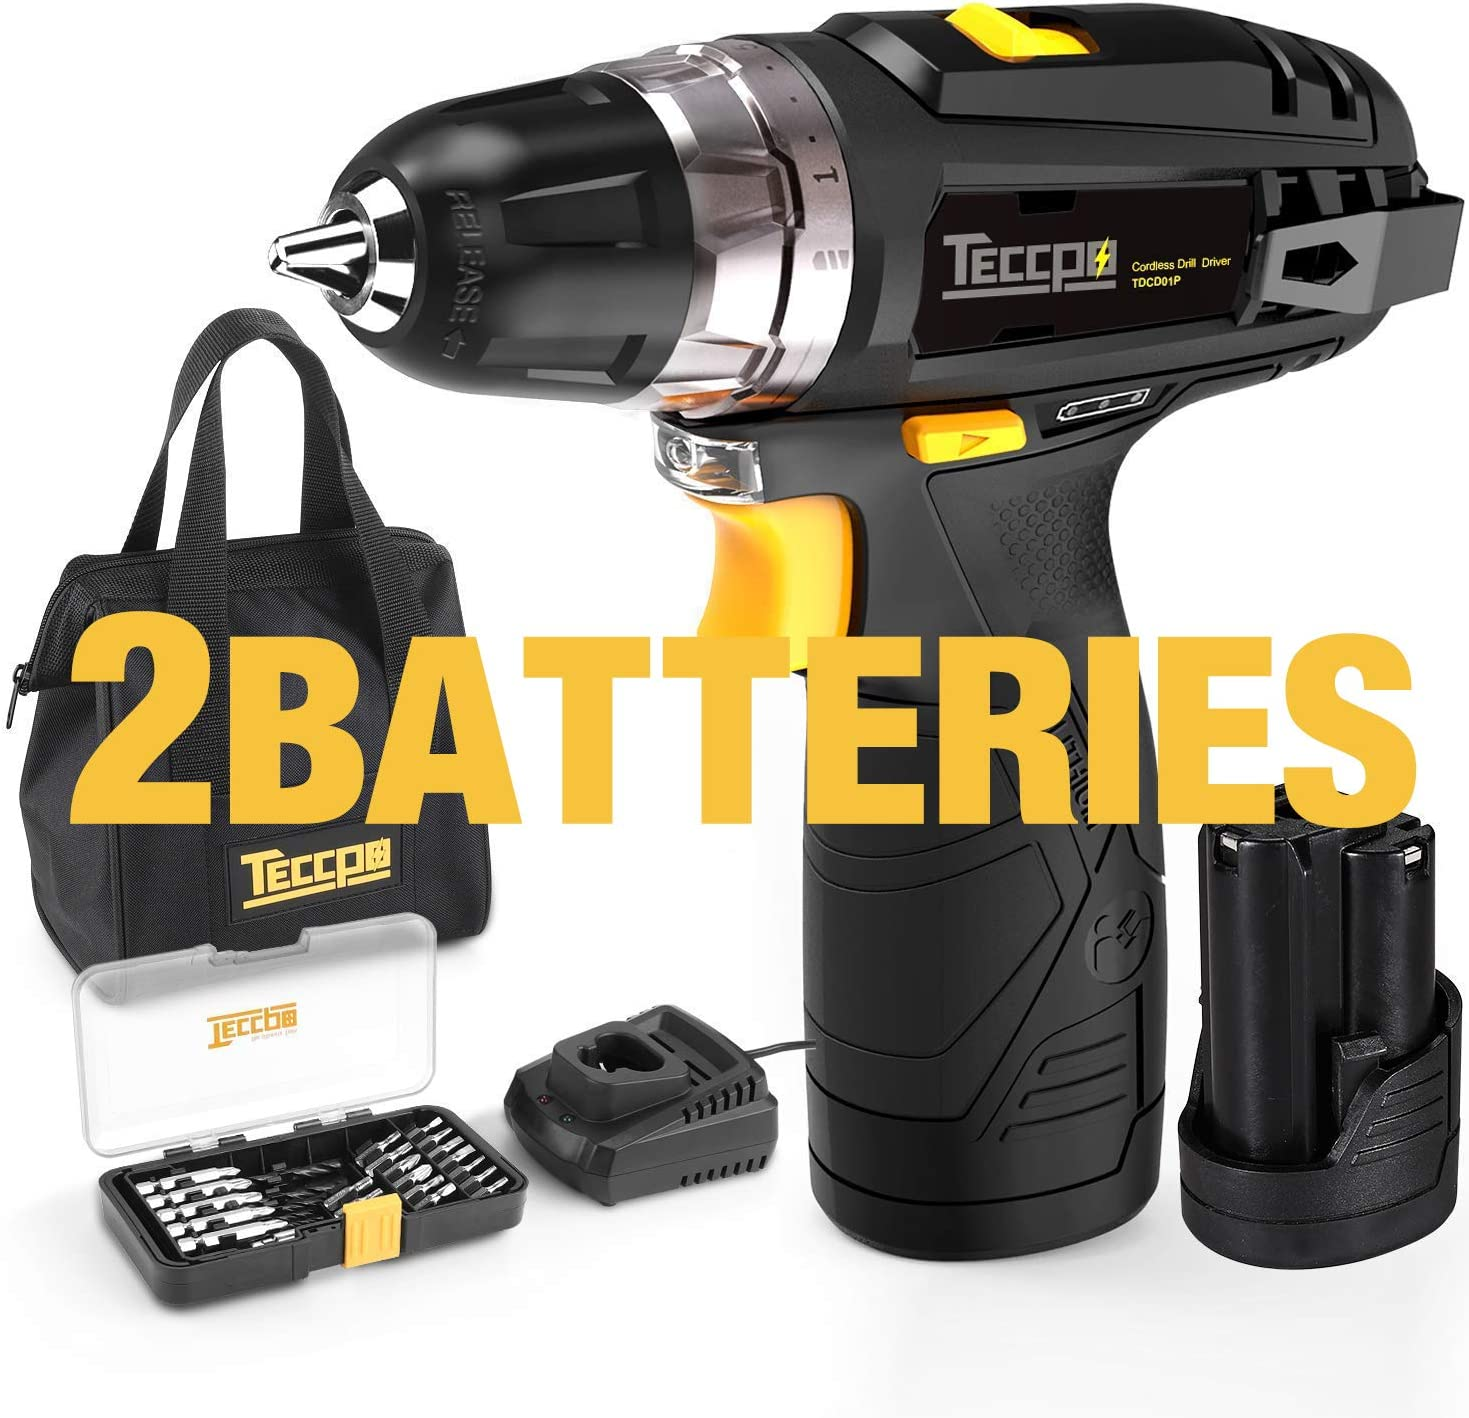 Cordless Drill, TECCPO 12V MAX Drill, Compact Drill set with 2Pcs 2000mAh Batteries, 2-Speed, 20 1 Torque Setting, Fast Charger, 265In-lbs Torque, 3 8 Chuck, 29pcs Accessories – TDCD01P